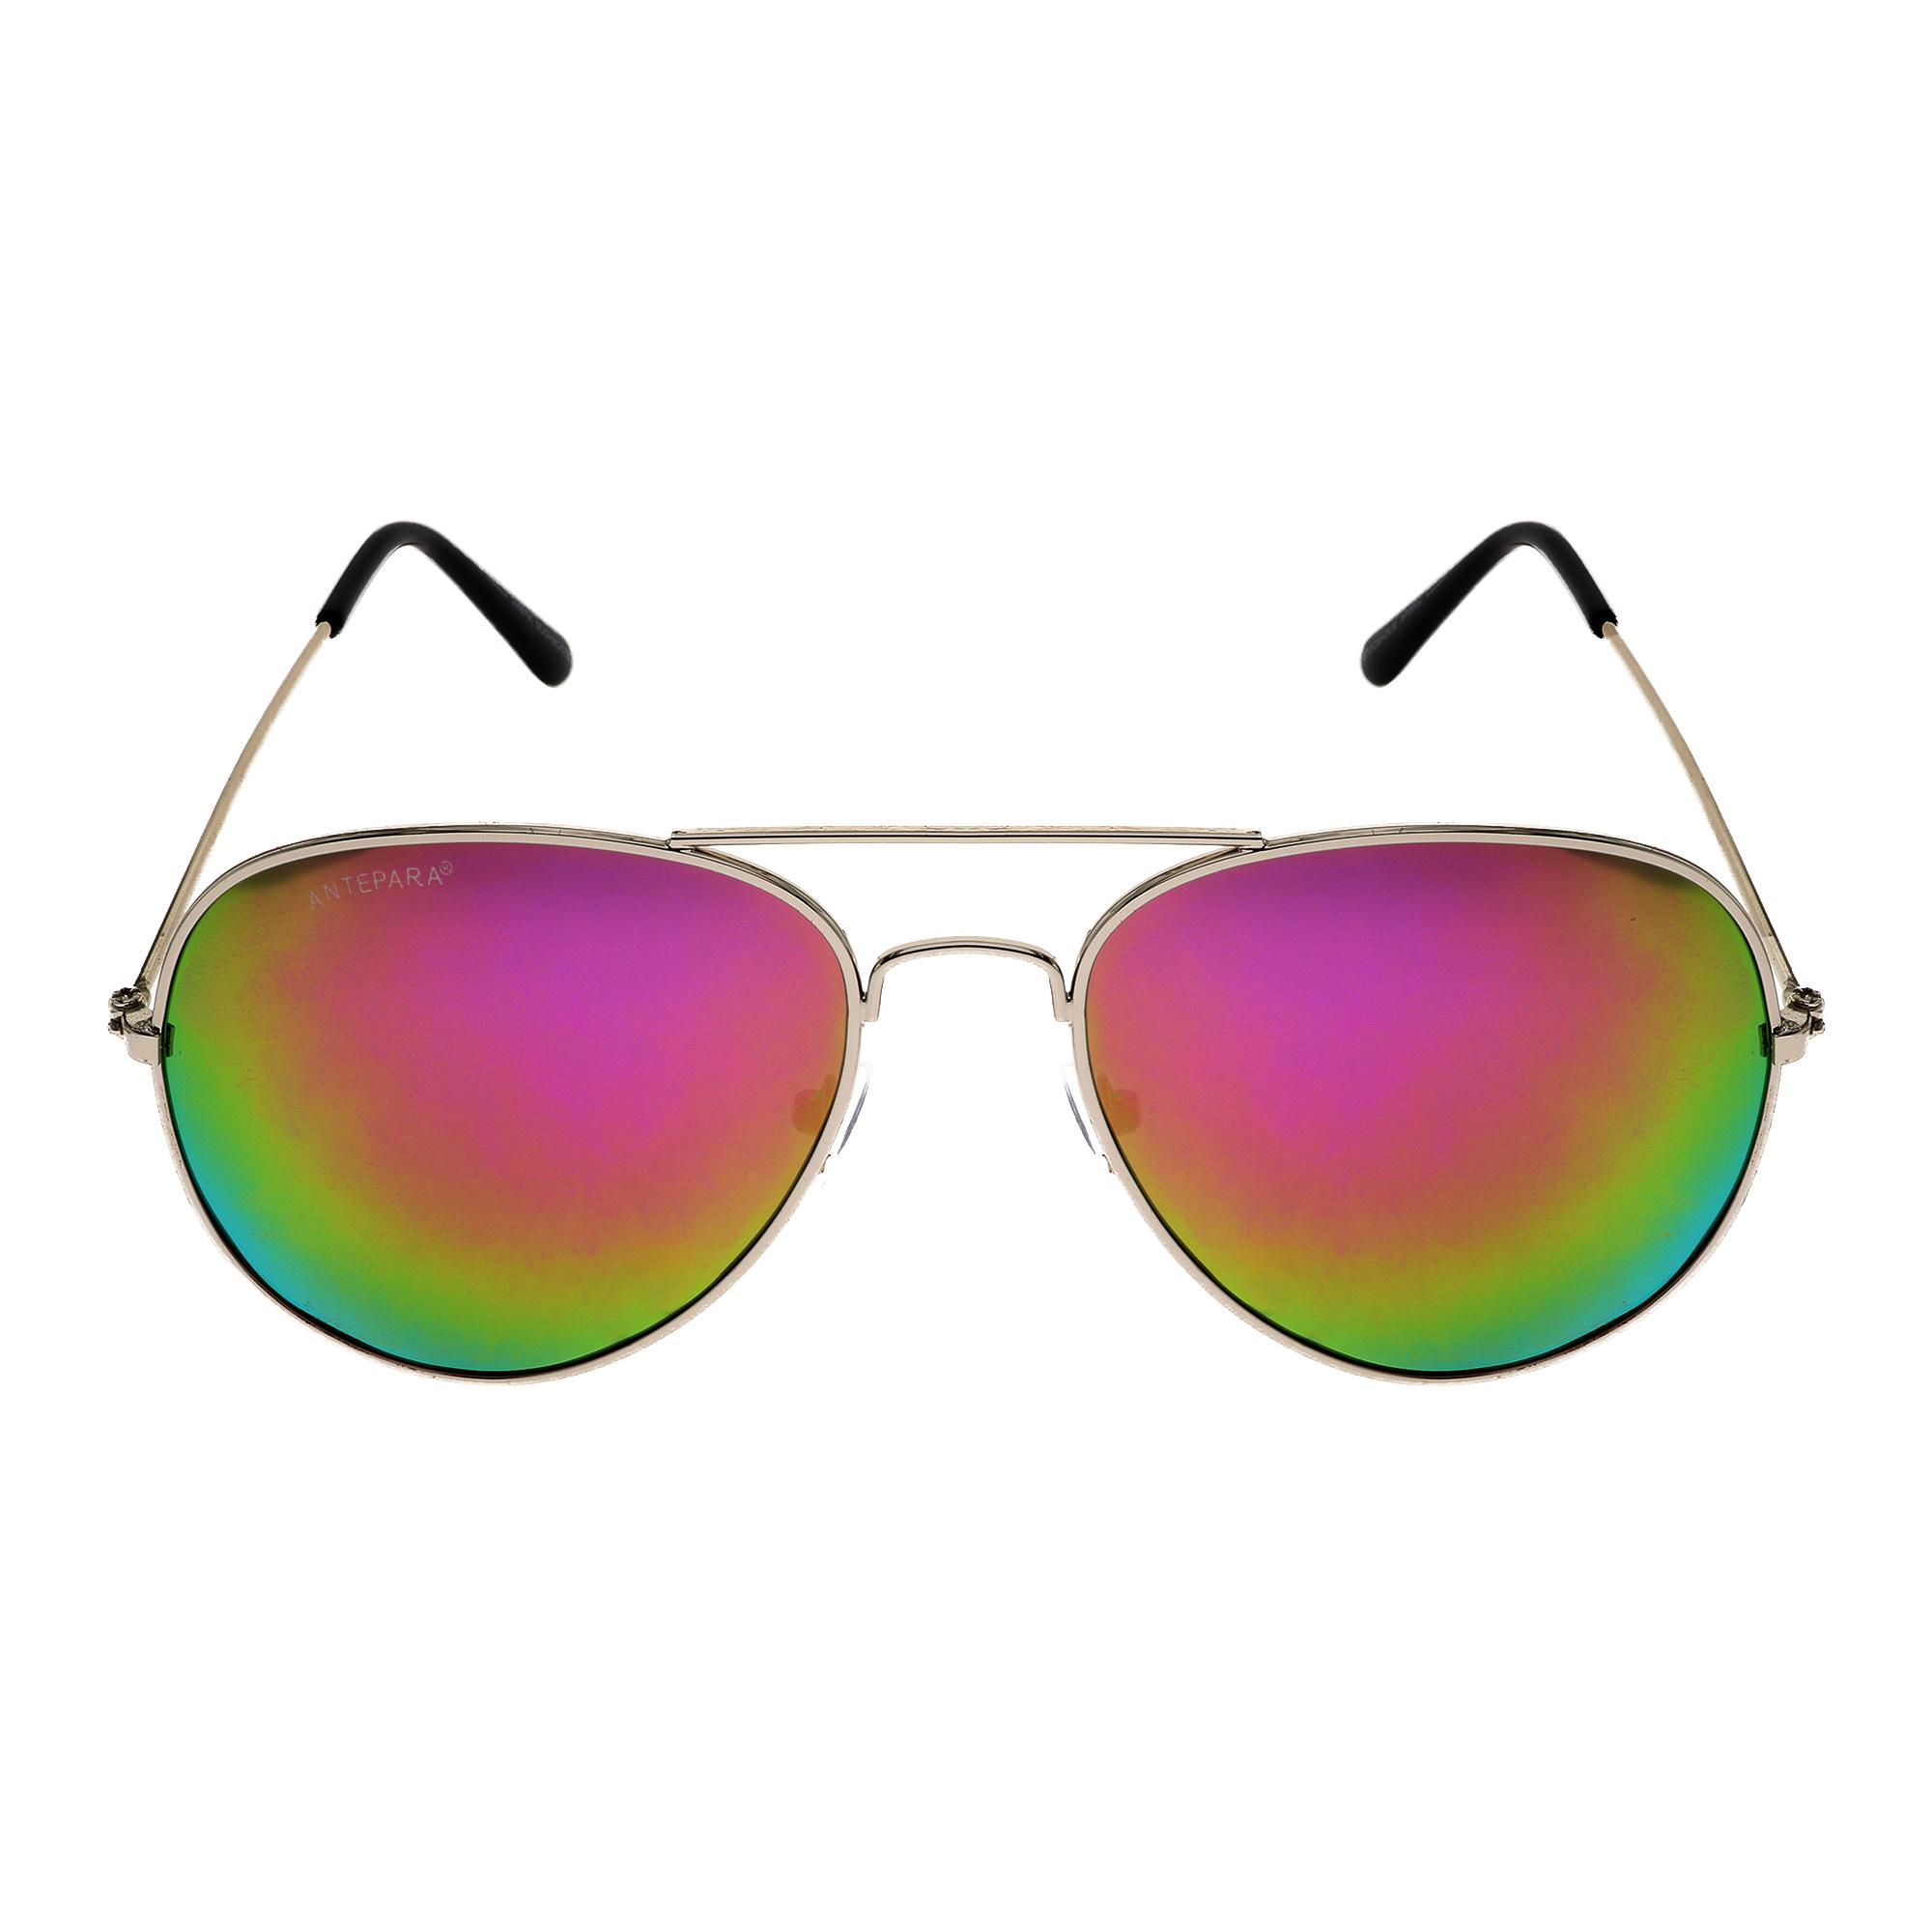 16e127aad83 Philippines. Stockholm AP3002 C203MPP Sunglasses Silver Frame Mirrored Pink  Lens (58-16-133)